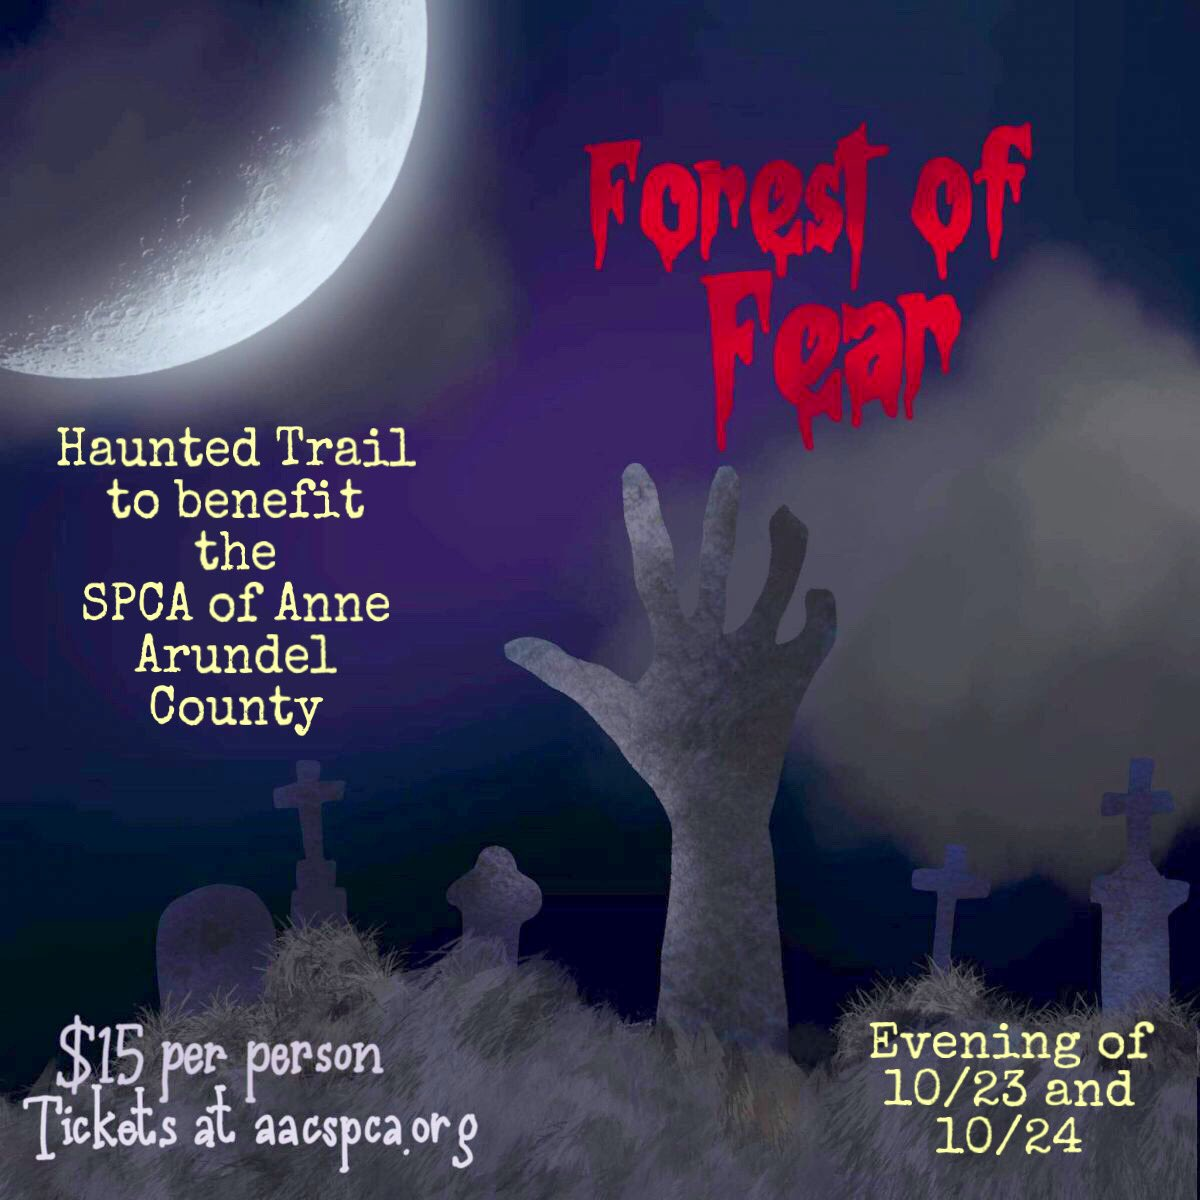 Forest of Fear Haunted Trail – 10/23 & 10/24